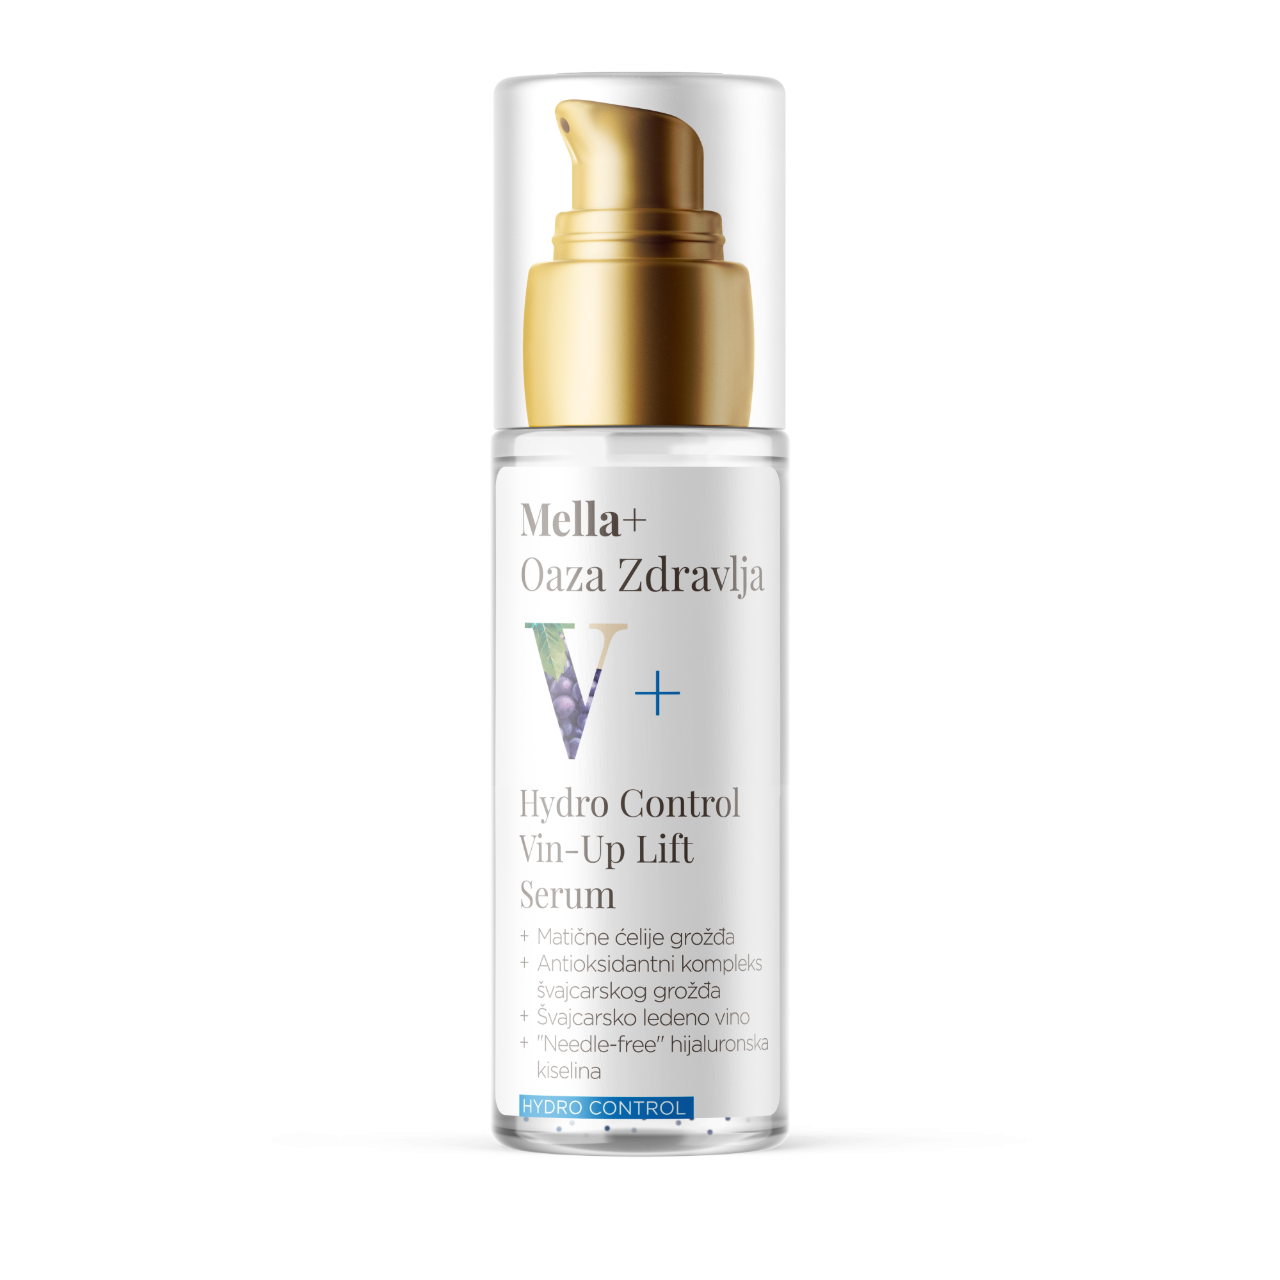 MELLA+ HYDRO CONTROL VIN-UP LIFT SERUM 30ml